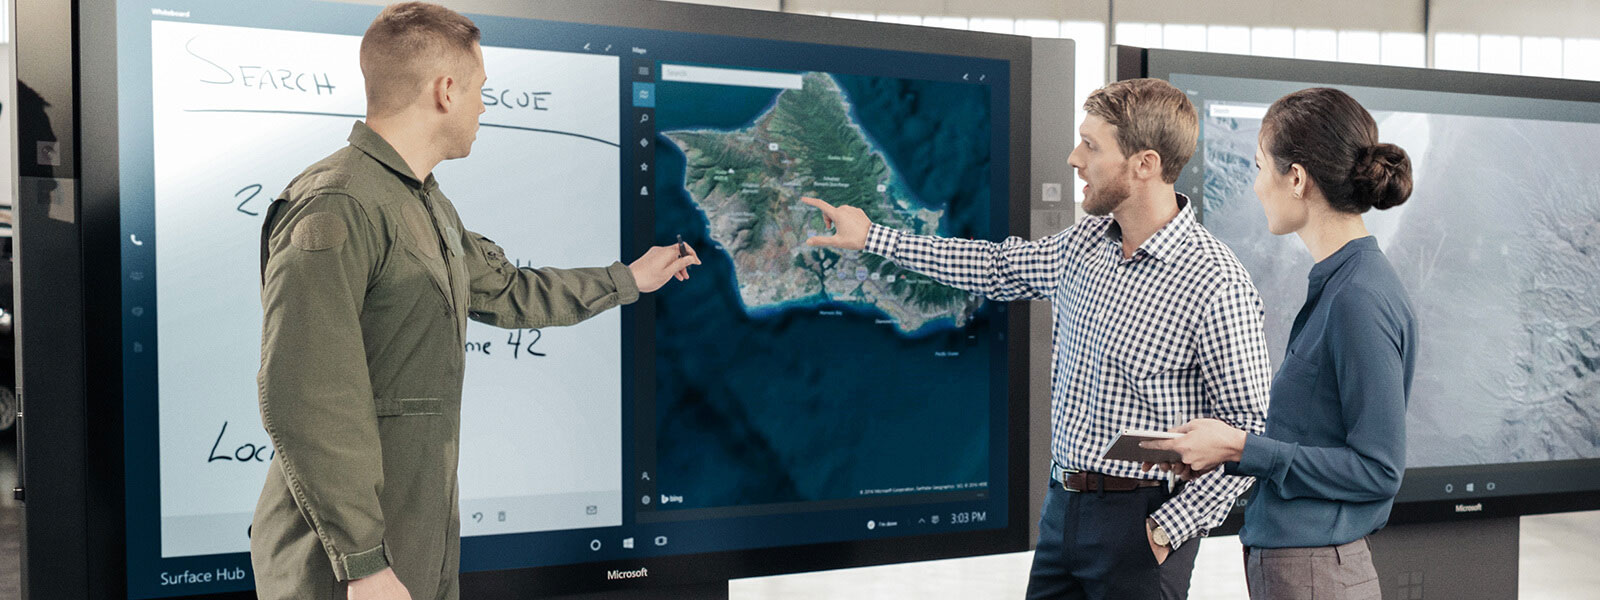 Woman and two men point to Surface Hub.